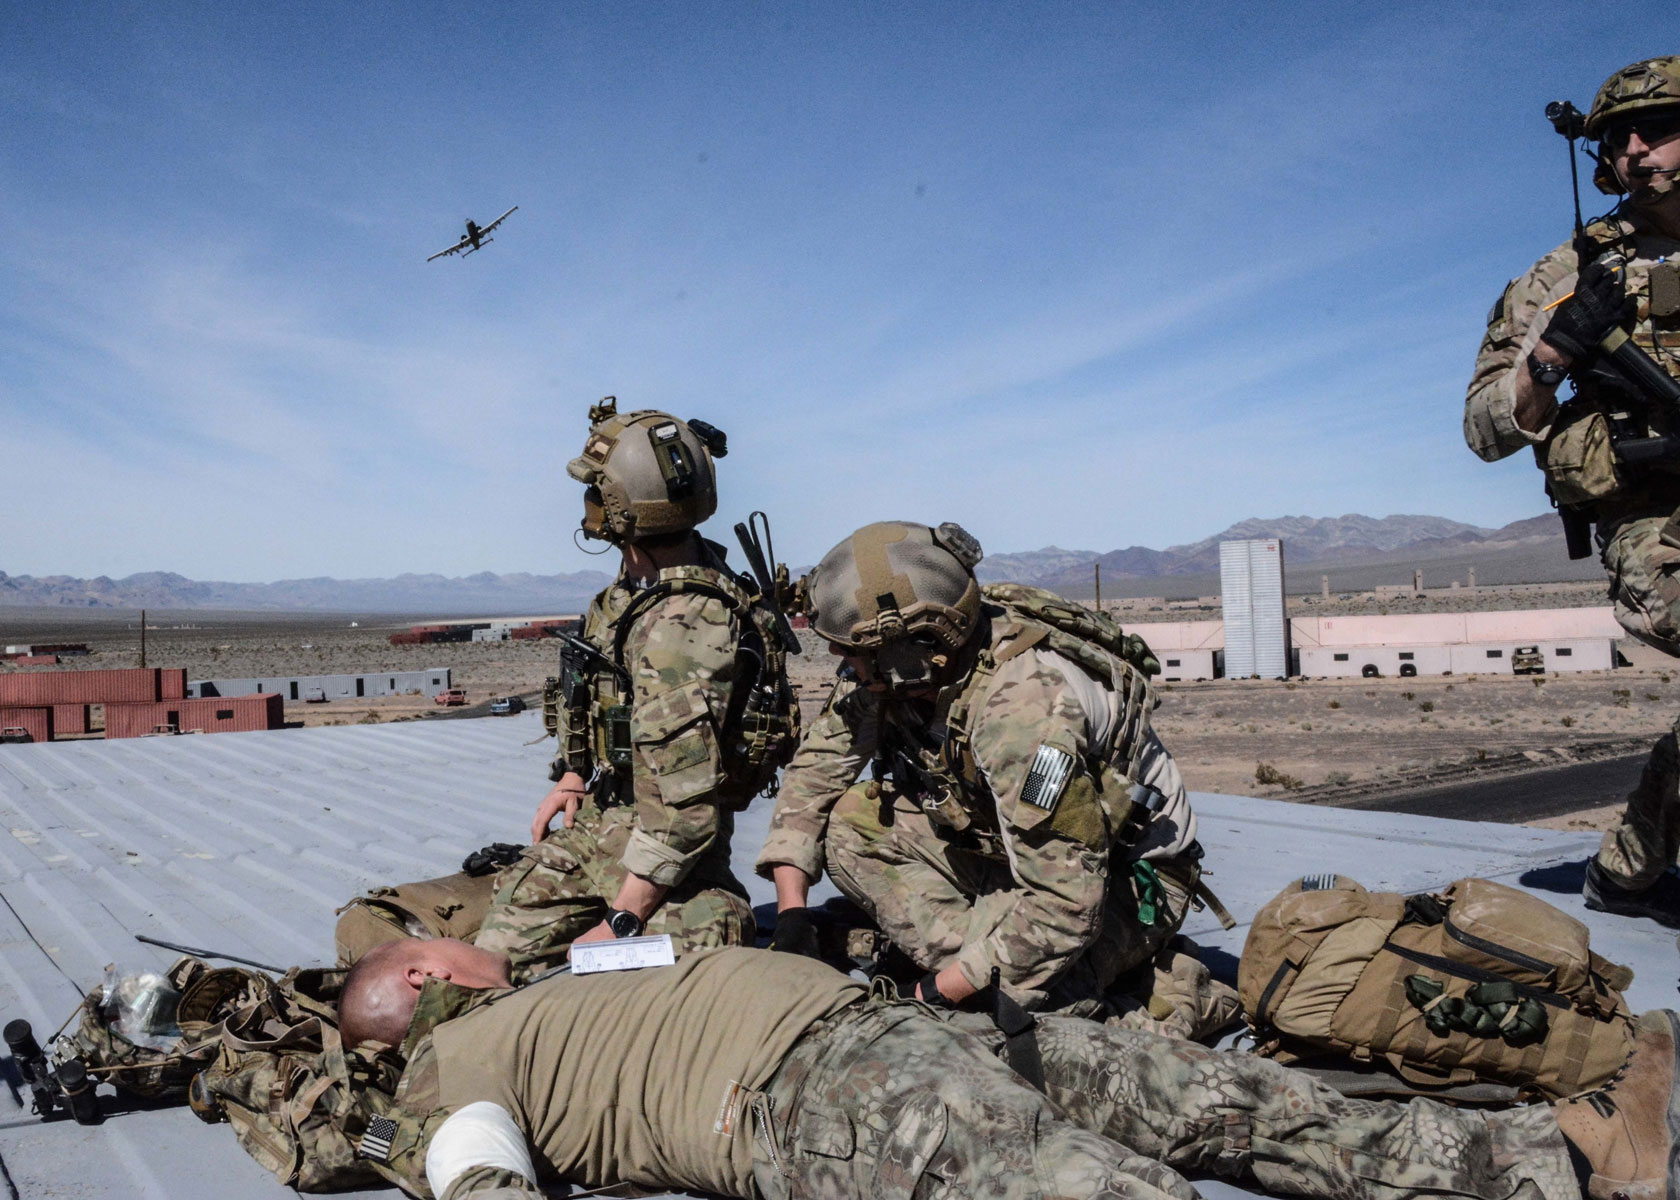 The training integrated the U.S. Air Force Weapons School and included joint, scenario-based training that enhanced tactical experts and leaders with real-world experience in advanced weapons and tactics.